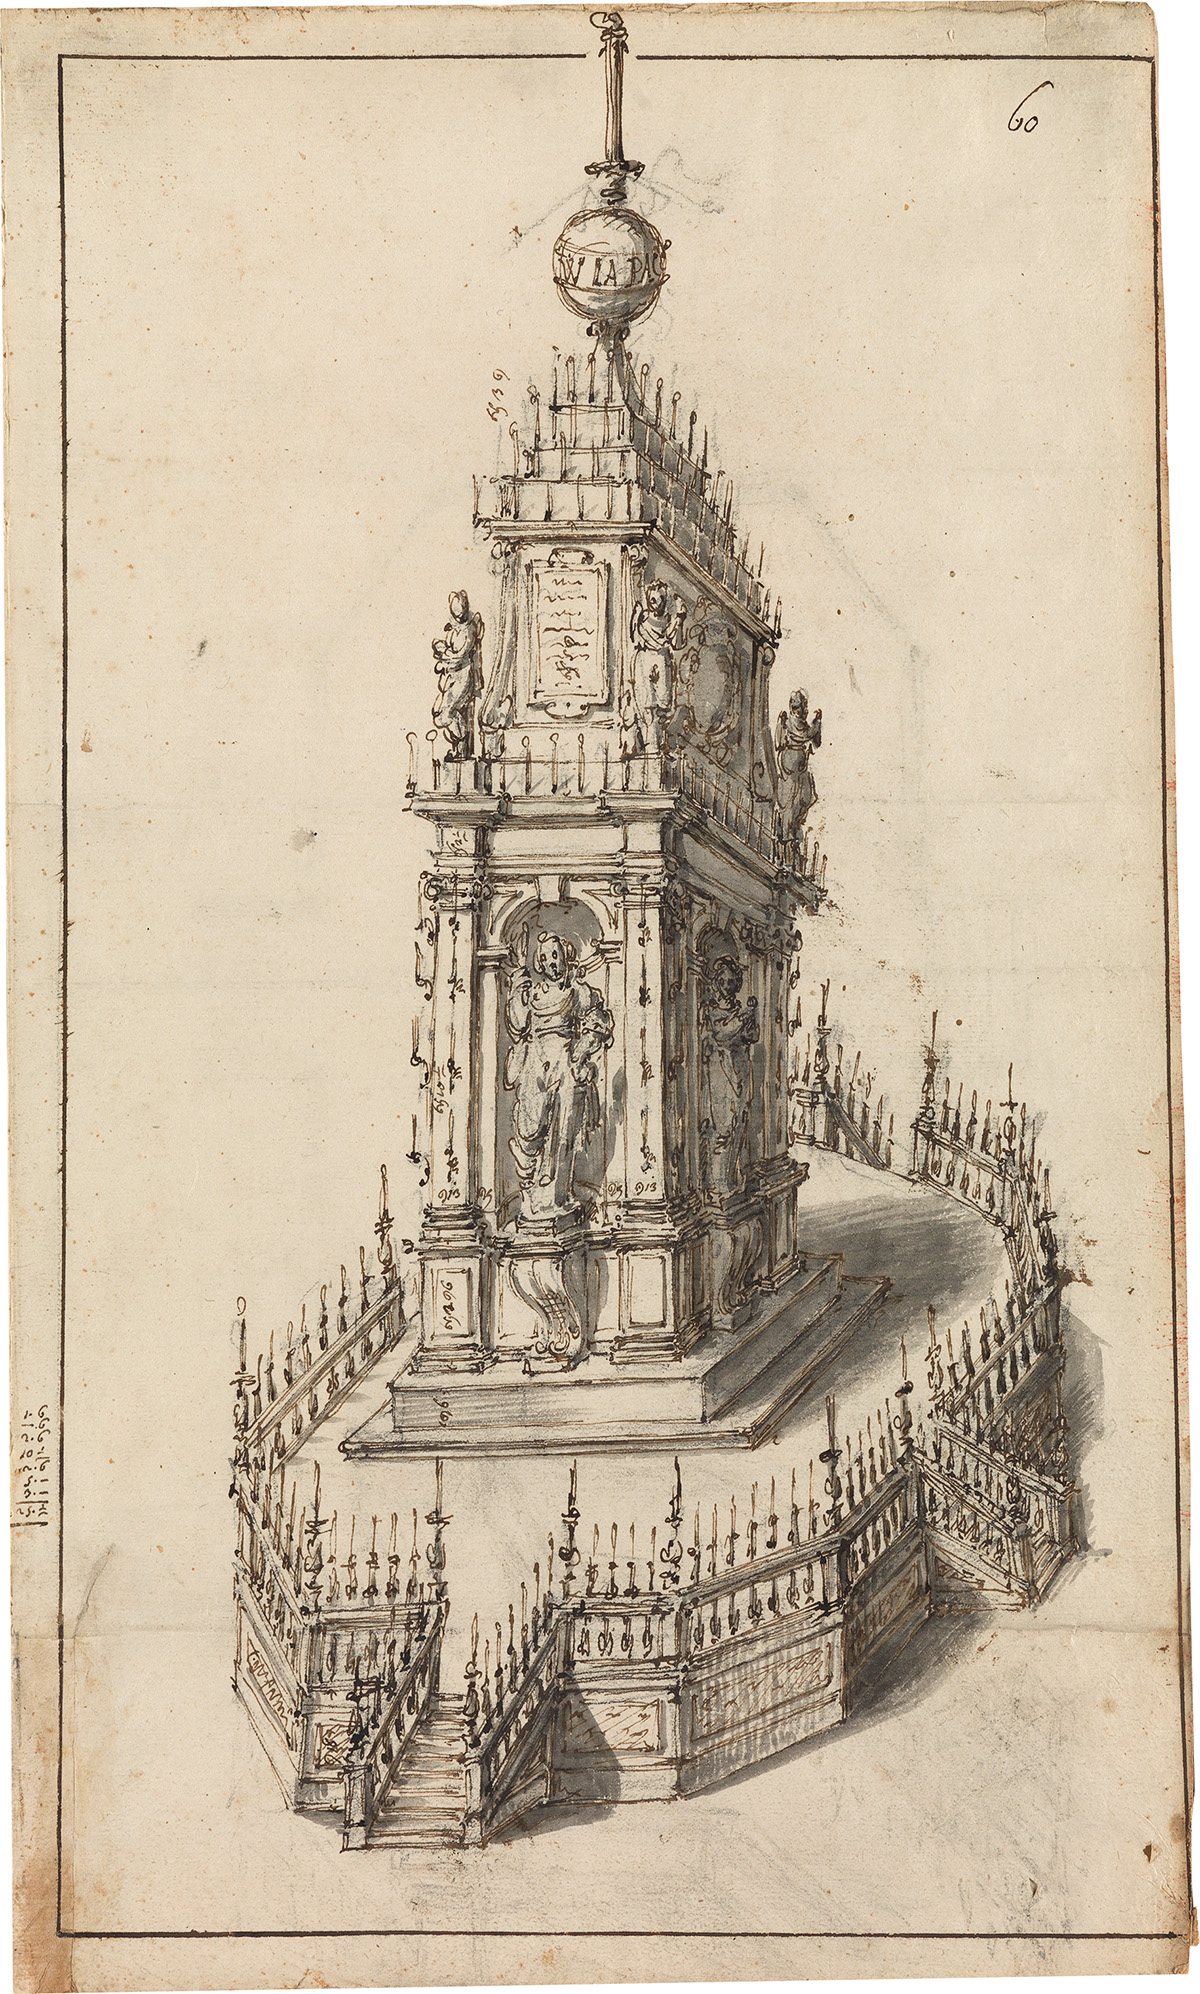 LOMBARD-SCHOOL-16TH-CENTURY-A-Design-for-a-Catafalque-and-Fl